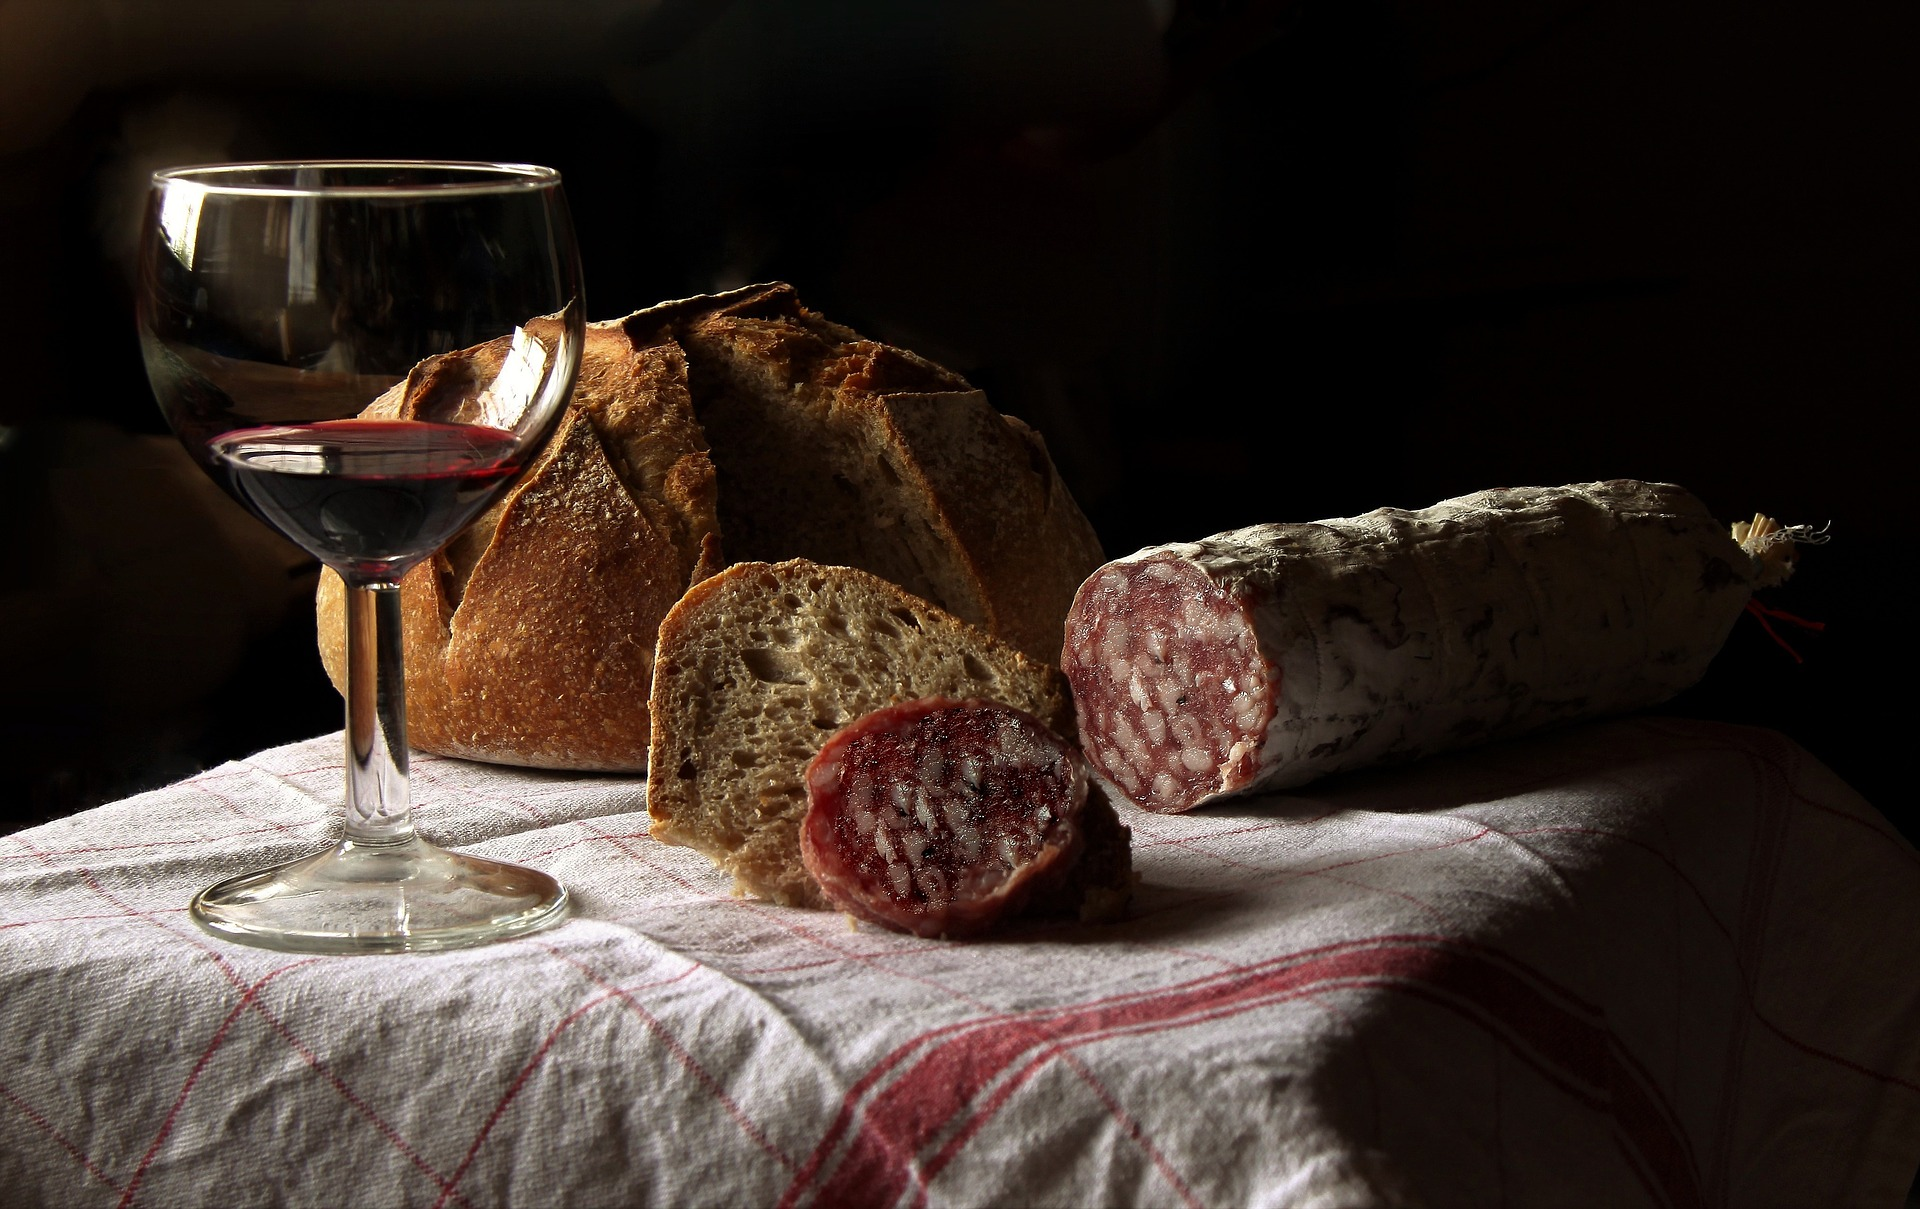 dried salami casing with bread and a glass of wine